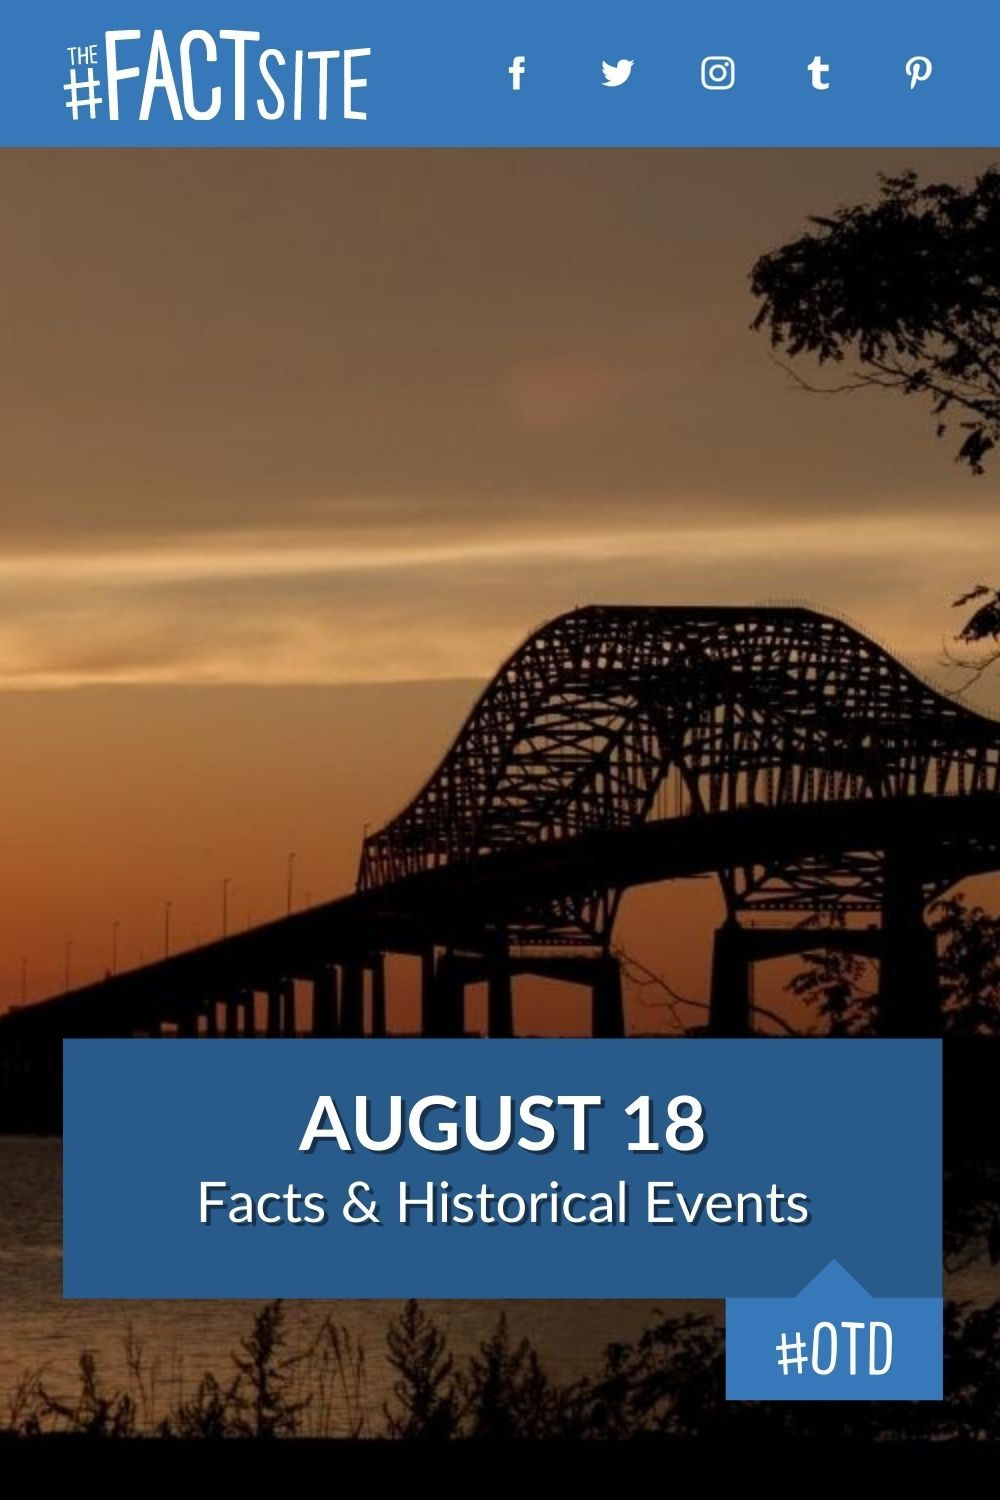 Facts & Historic Events That Happened on August 18